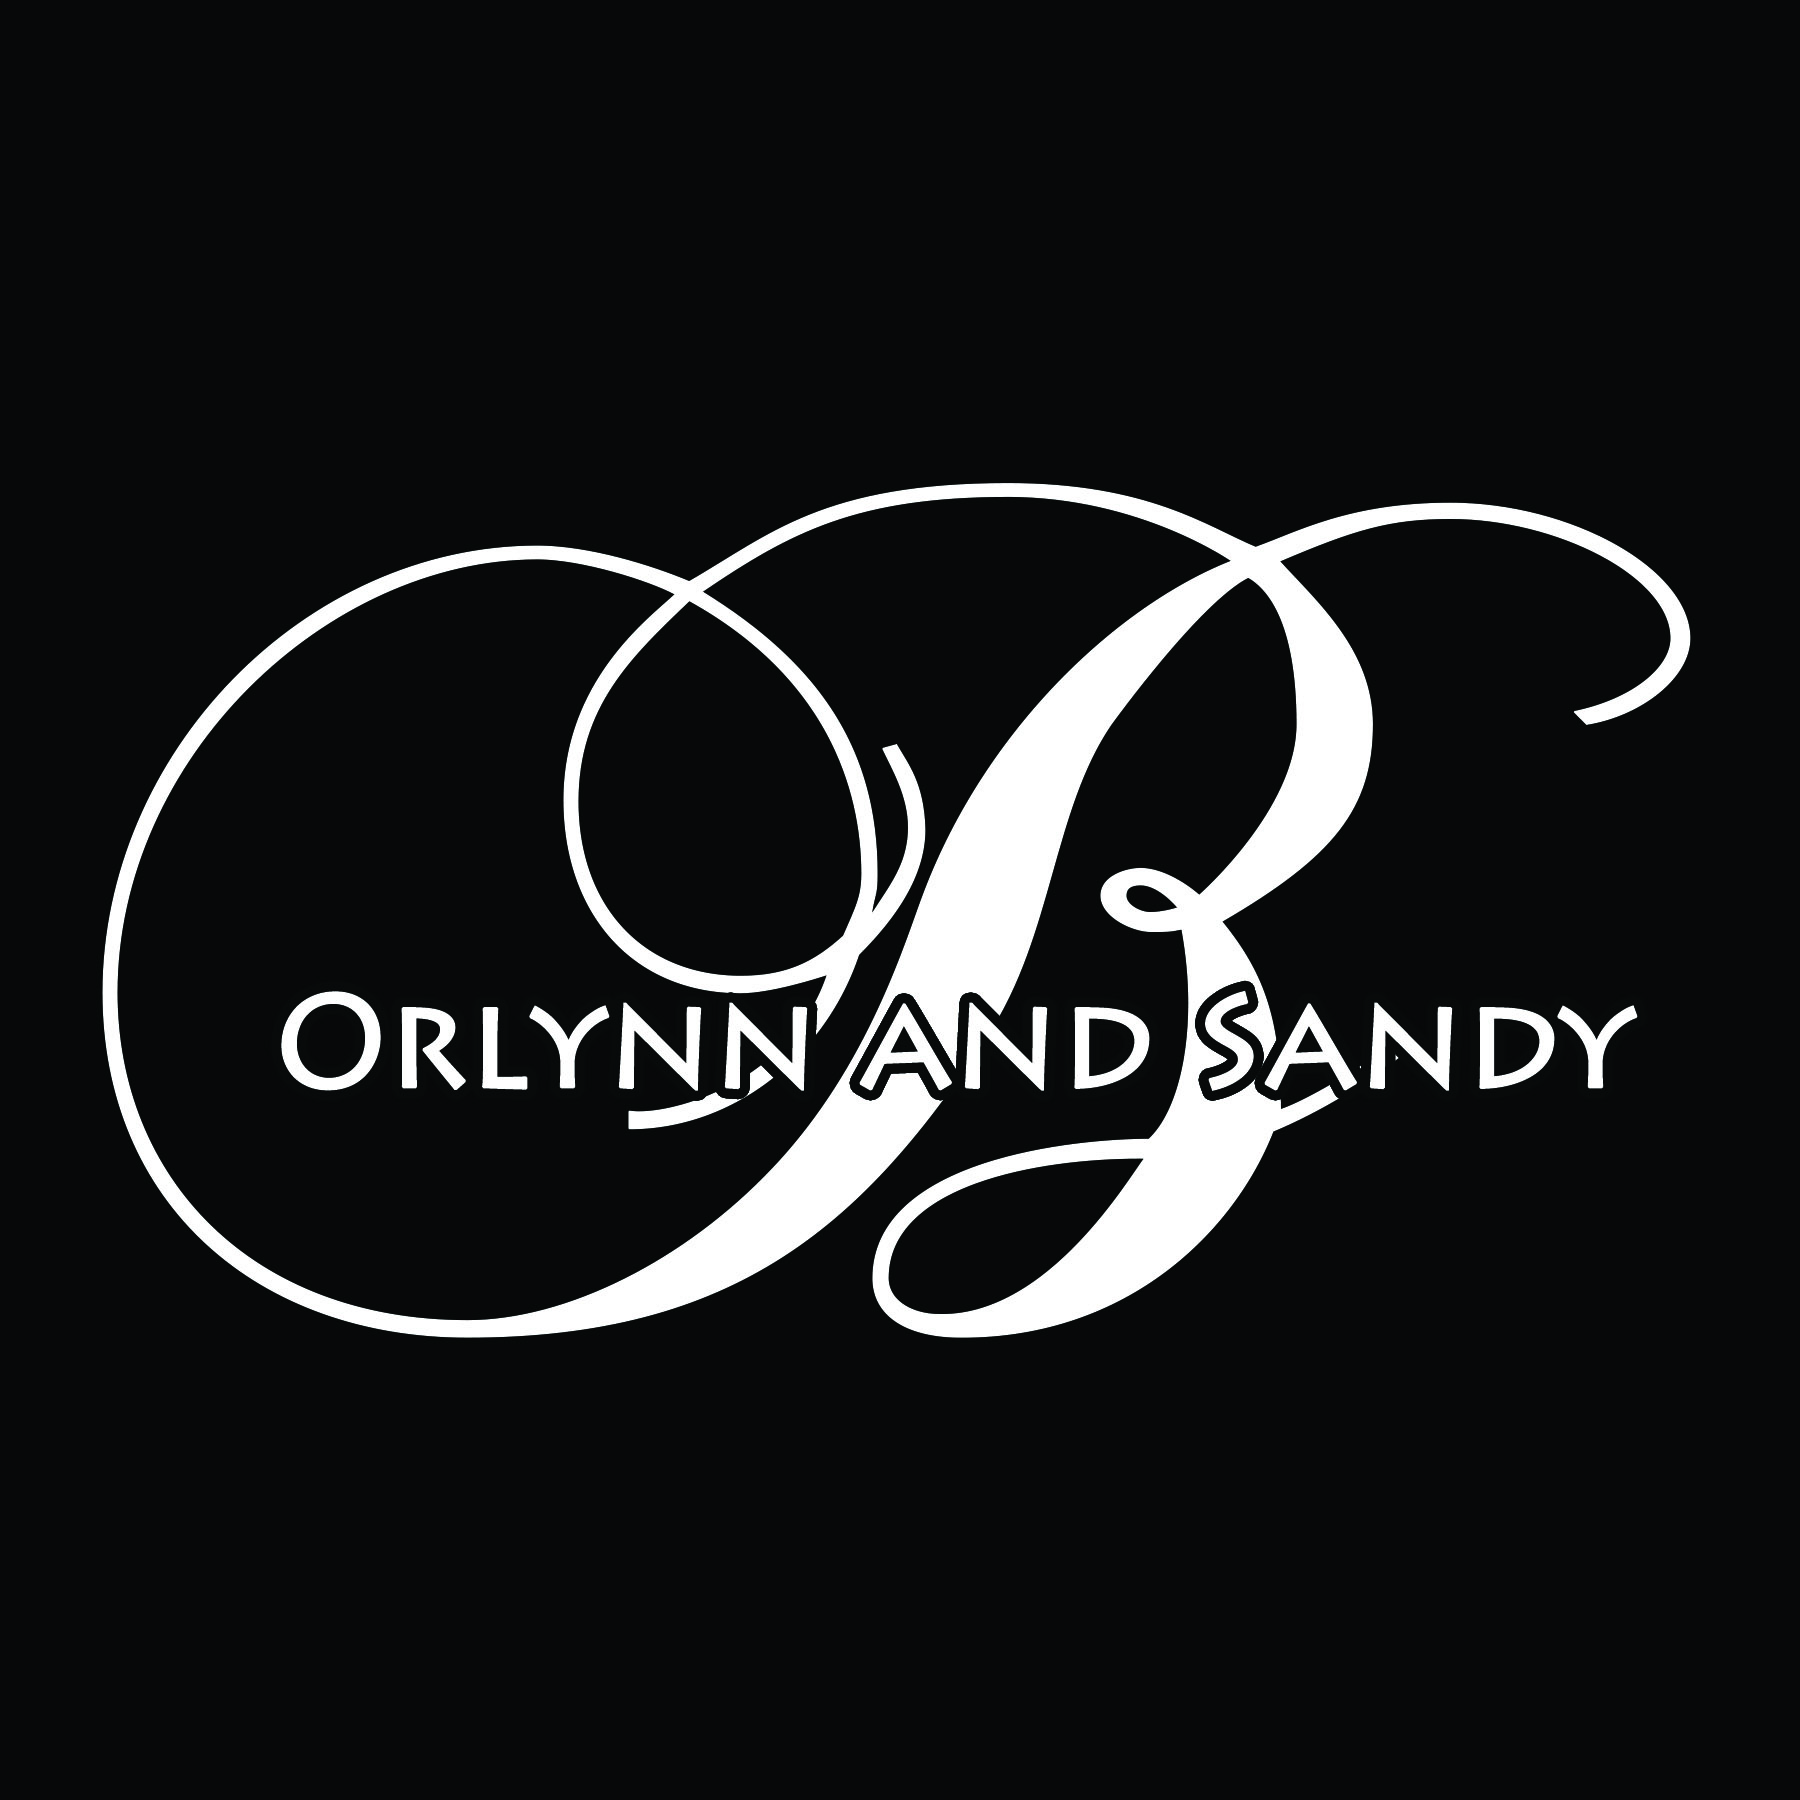 ORLYNN AND SANDY MONOGRAM 1.jpg